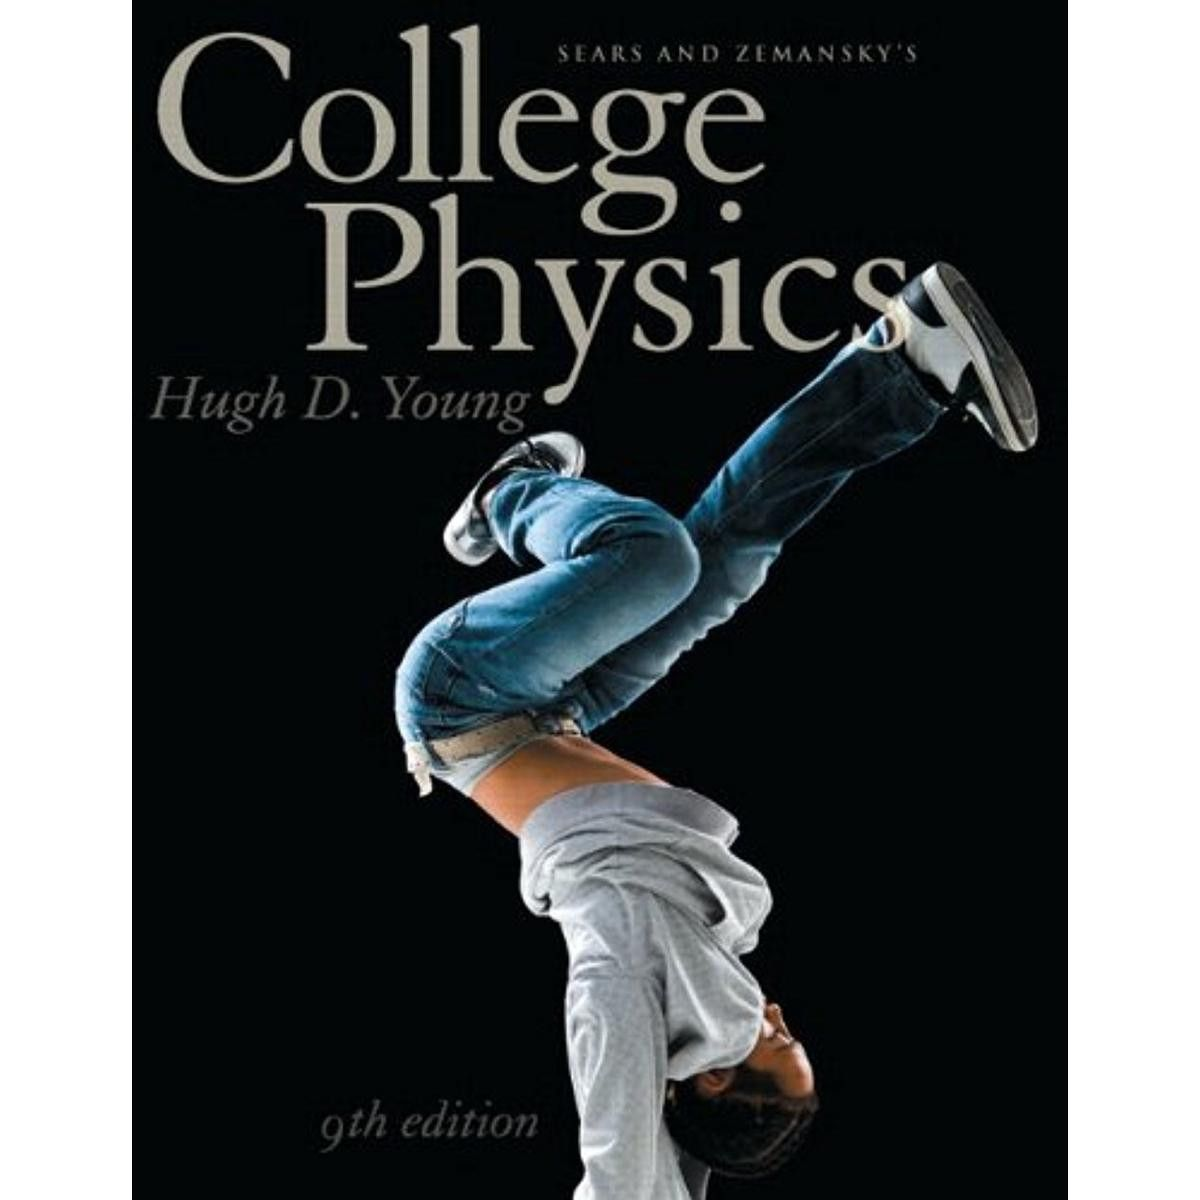 BHFO 9th Edition College Physics Hugh D. Young Text Book